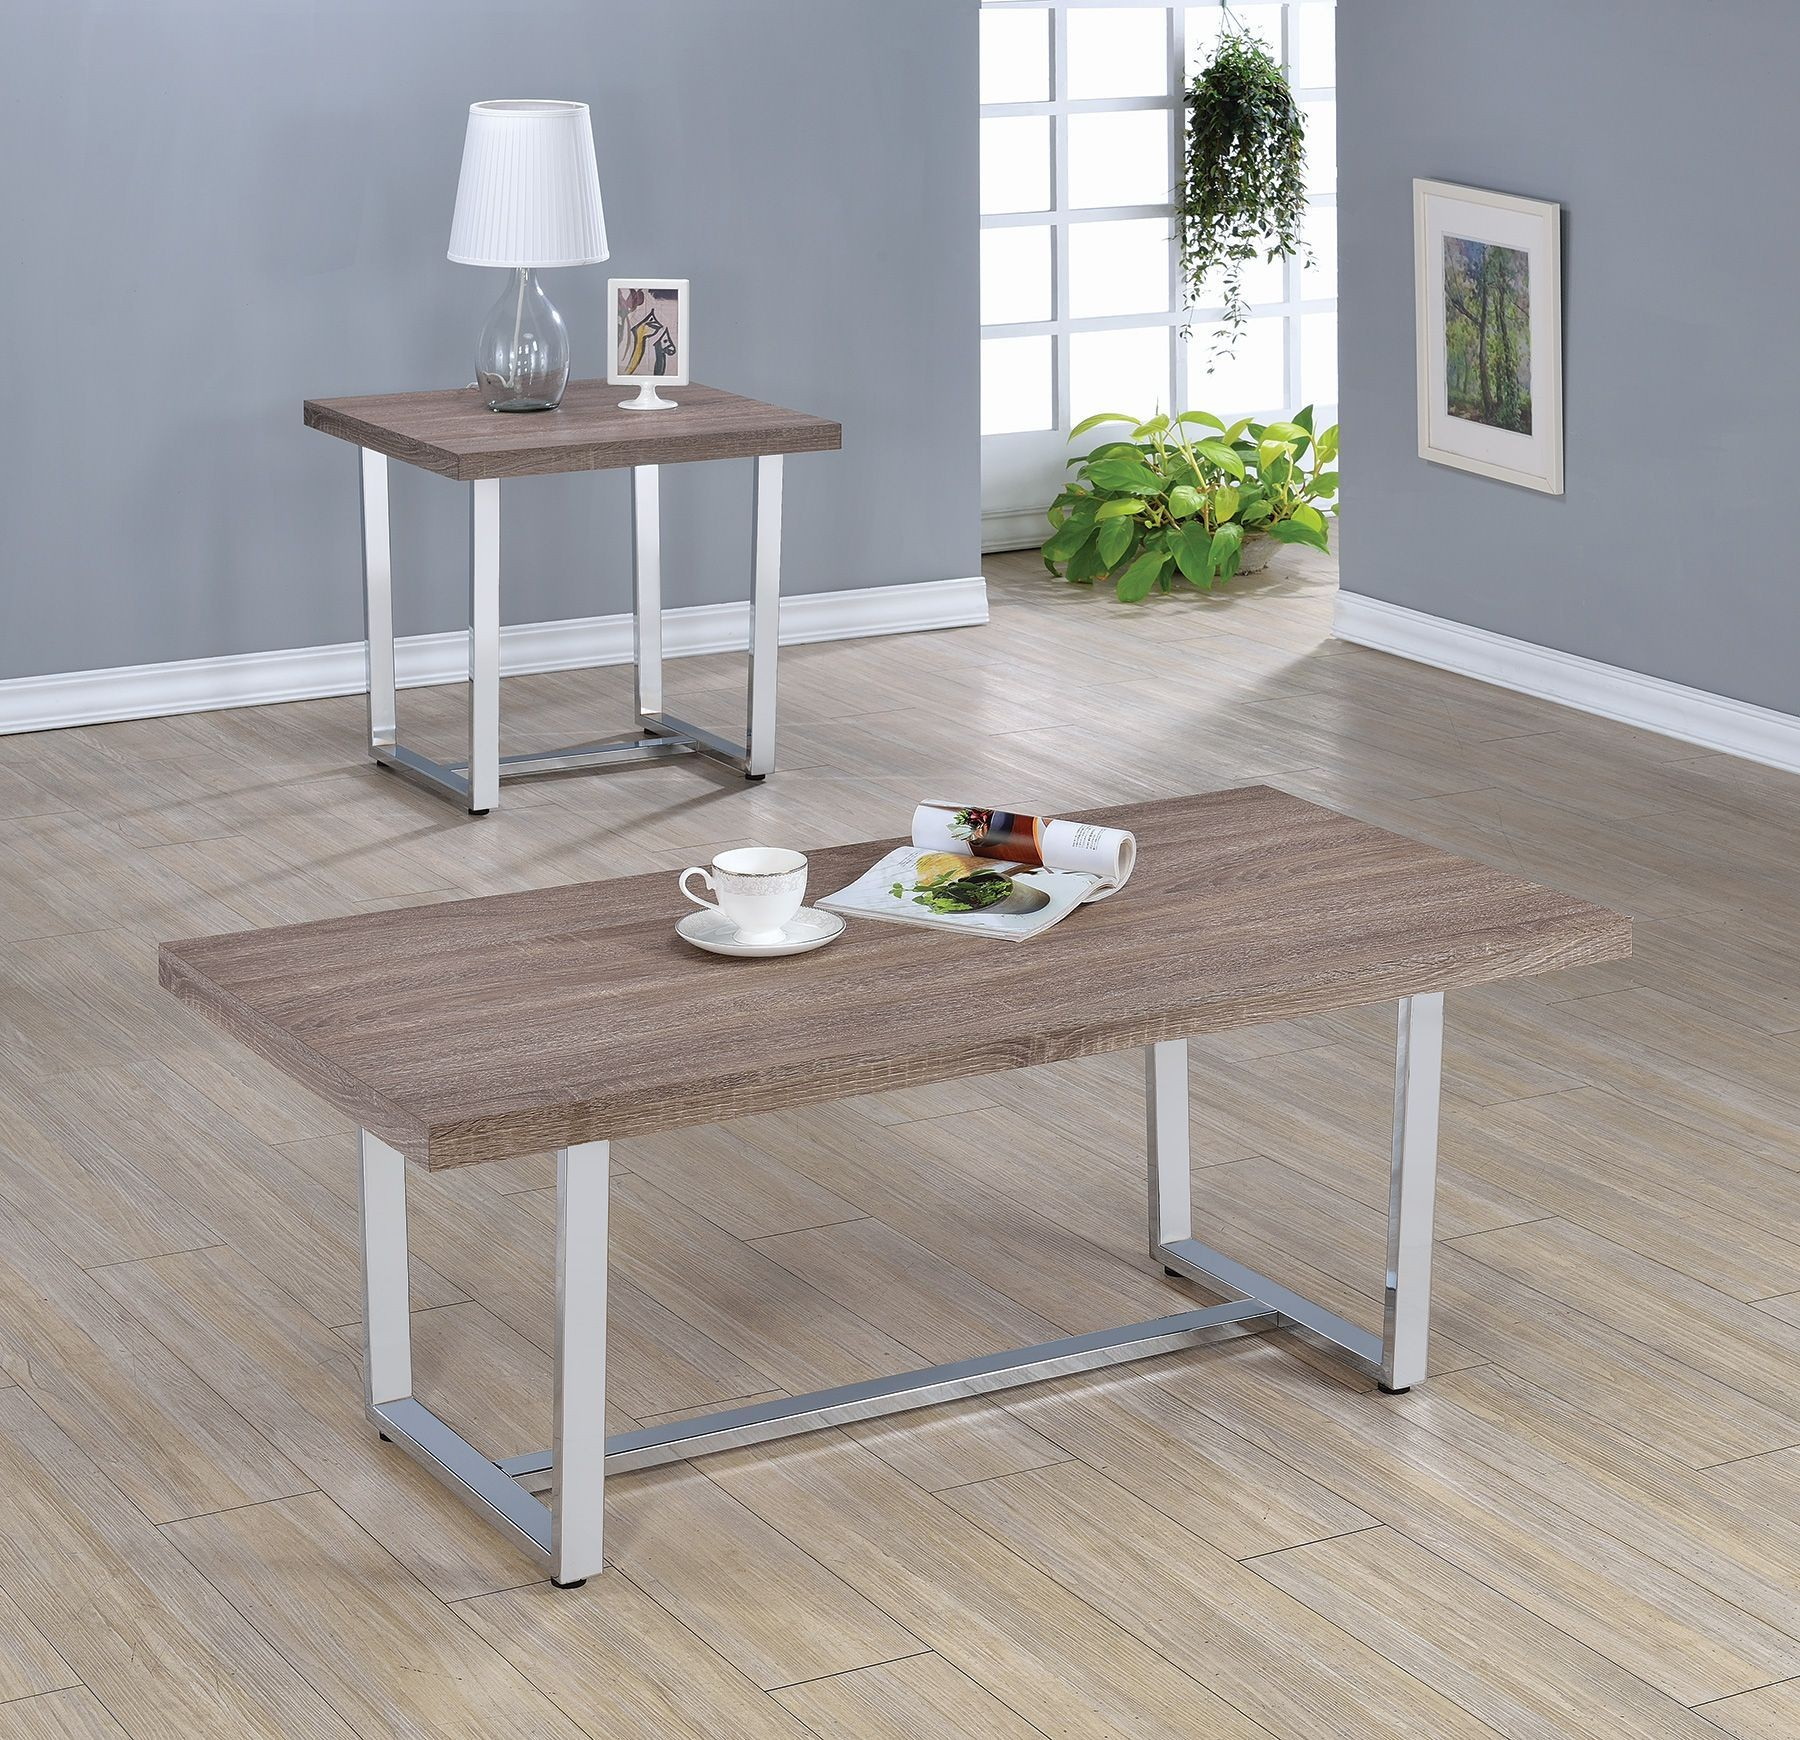 Marten Pc Weathered Taupe Coffee Table Set Dallas TX Occasional - Magic coffee table